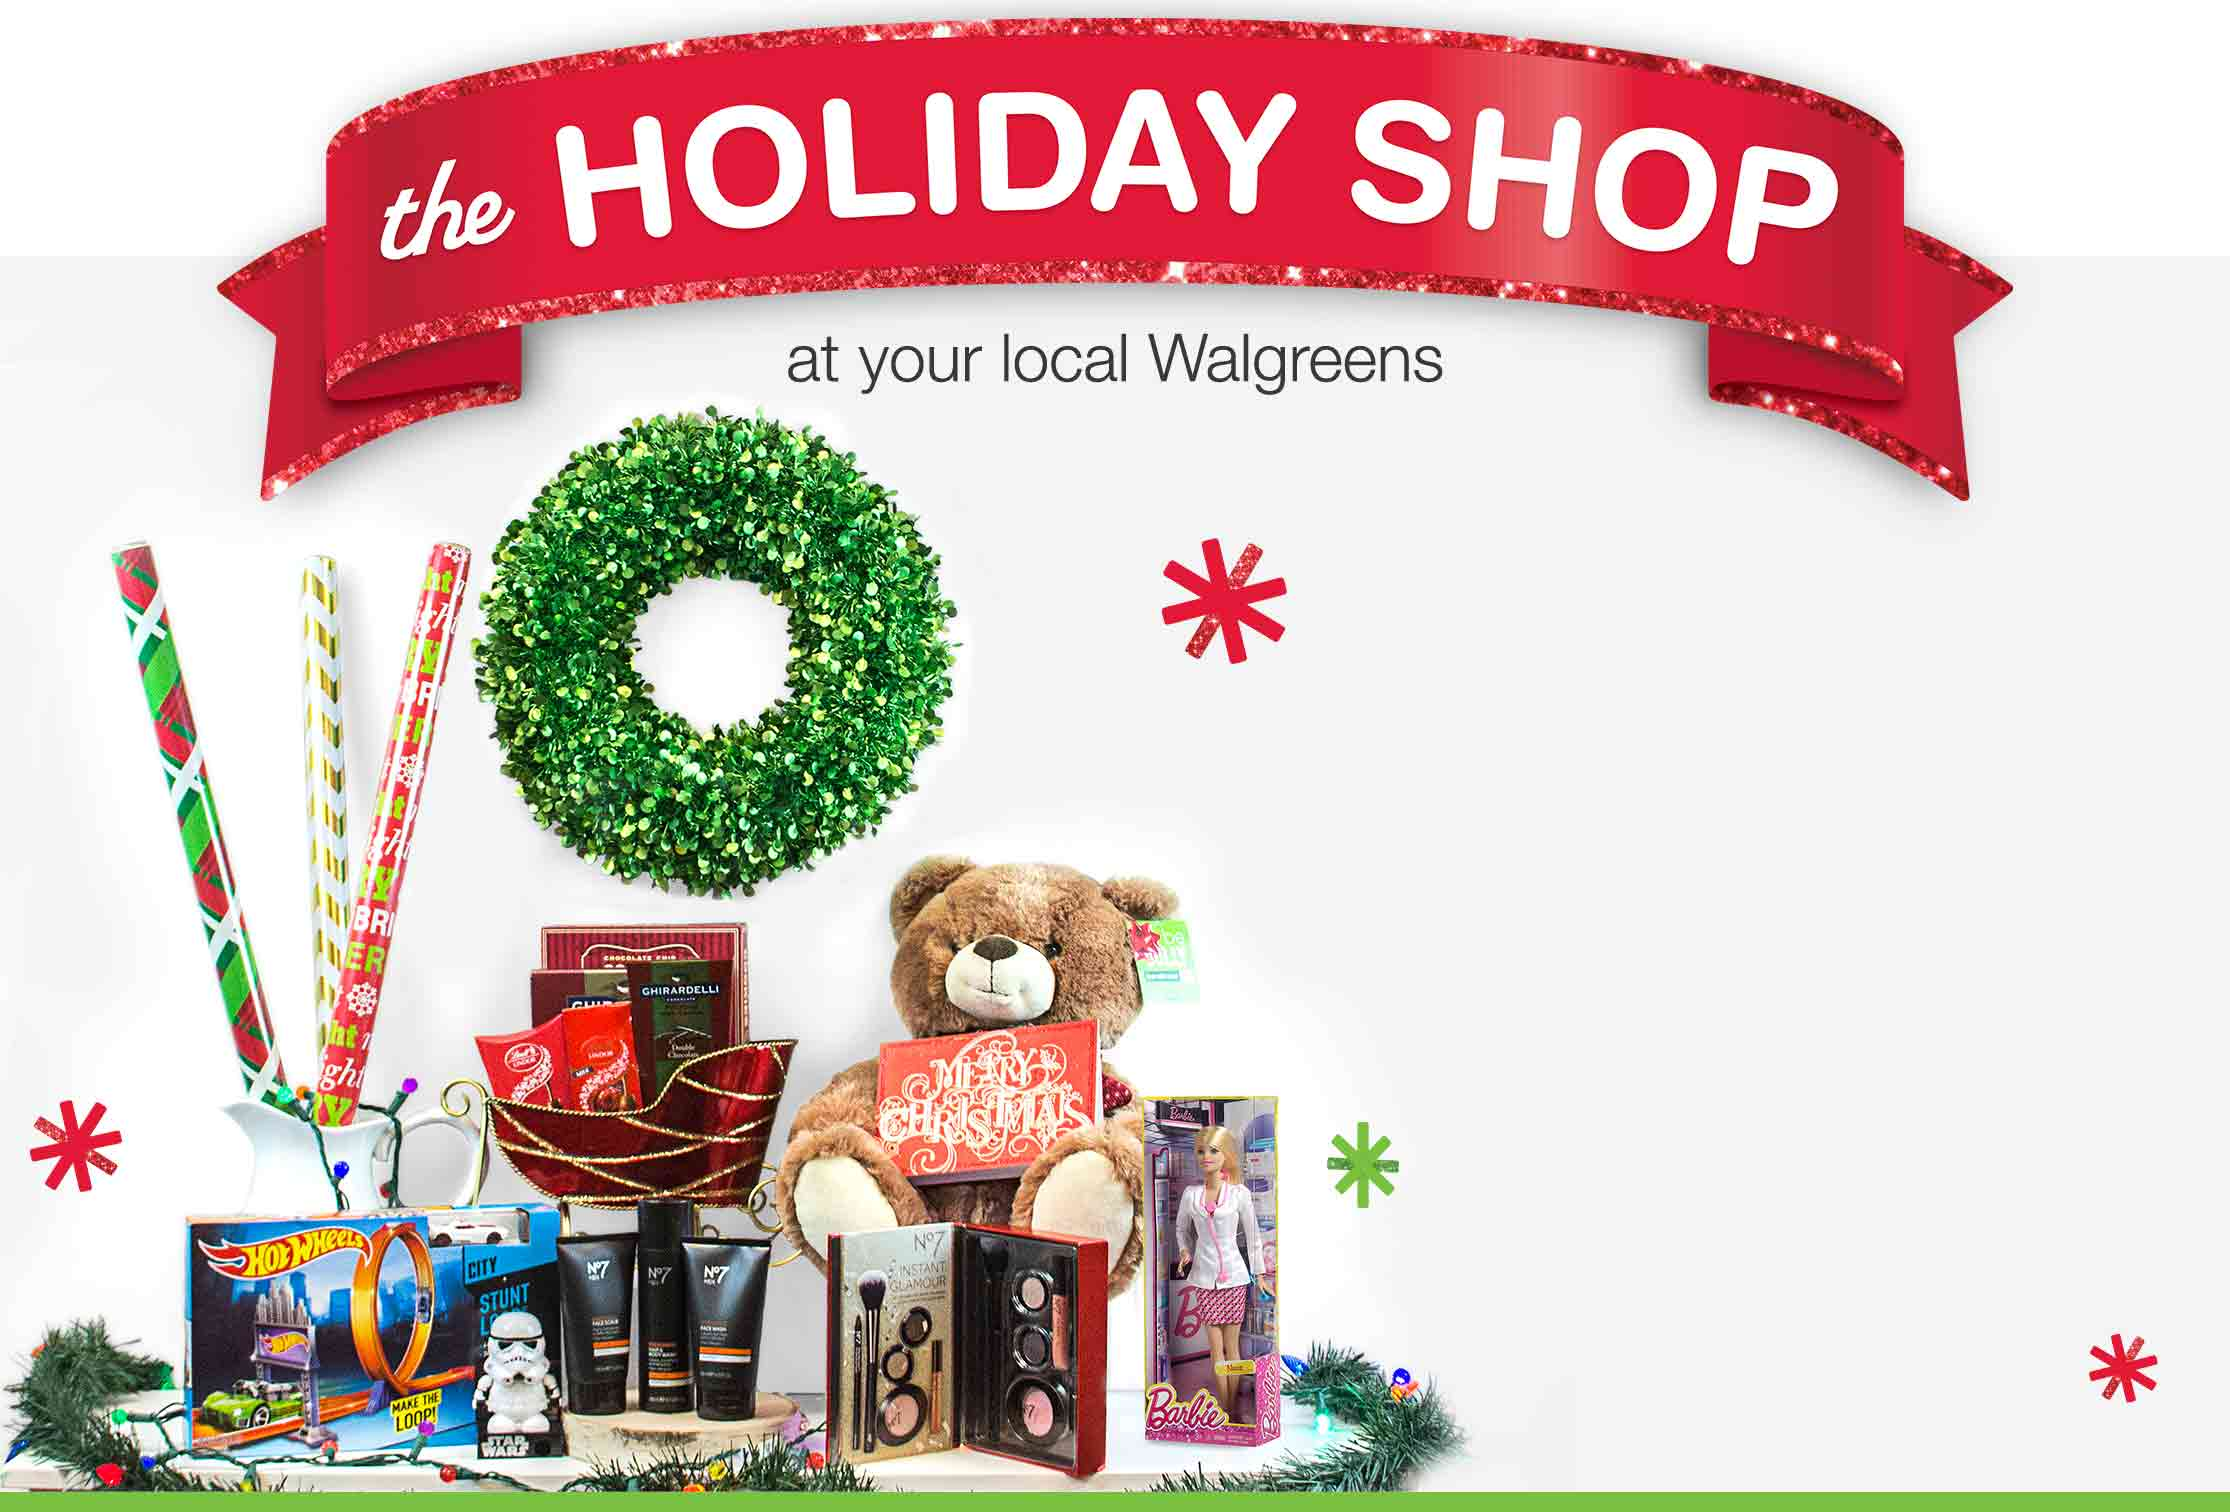 find season essentials in store - Walgreens Open Christmas Day